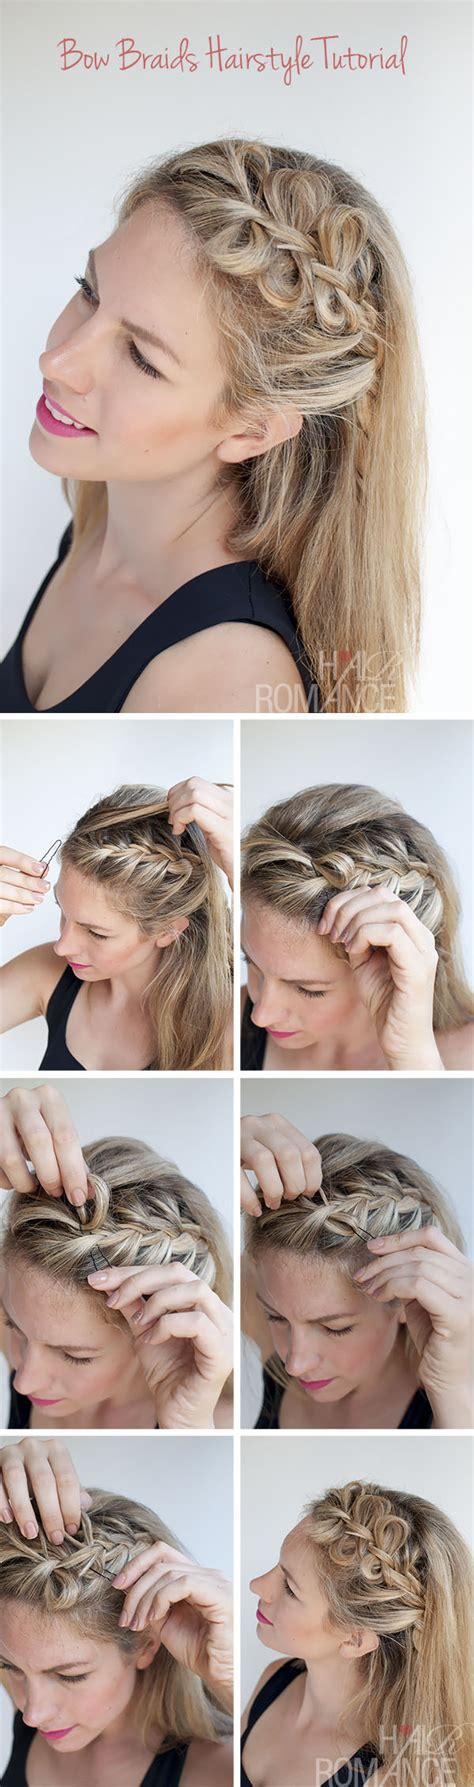 Braided Hairstyles For Hair Tutorials by Craftionary